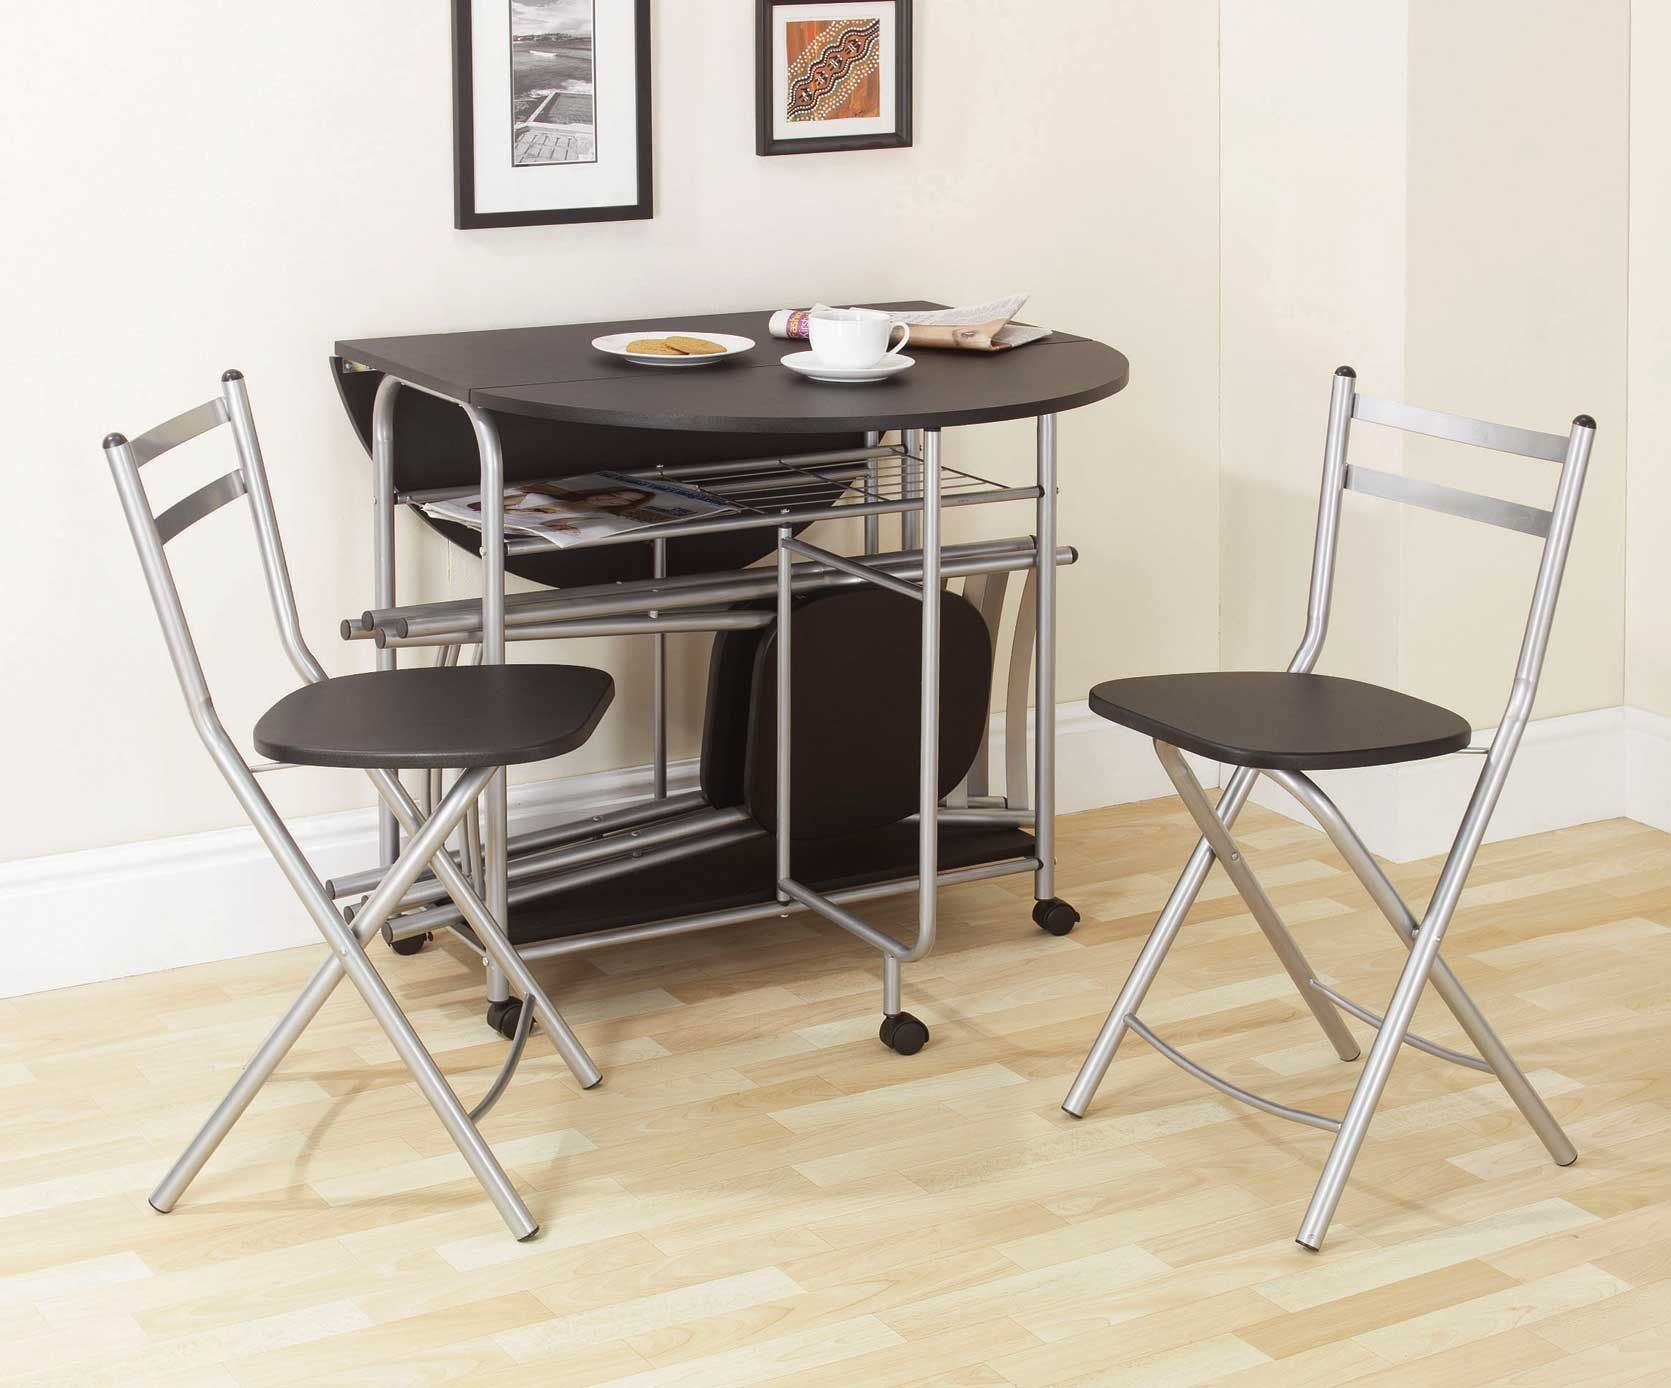 Home collection metal butterfly dining table and folding chairs